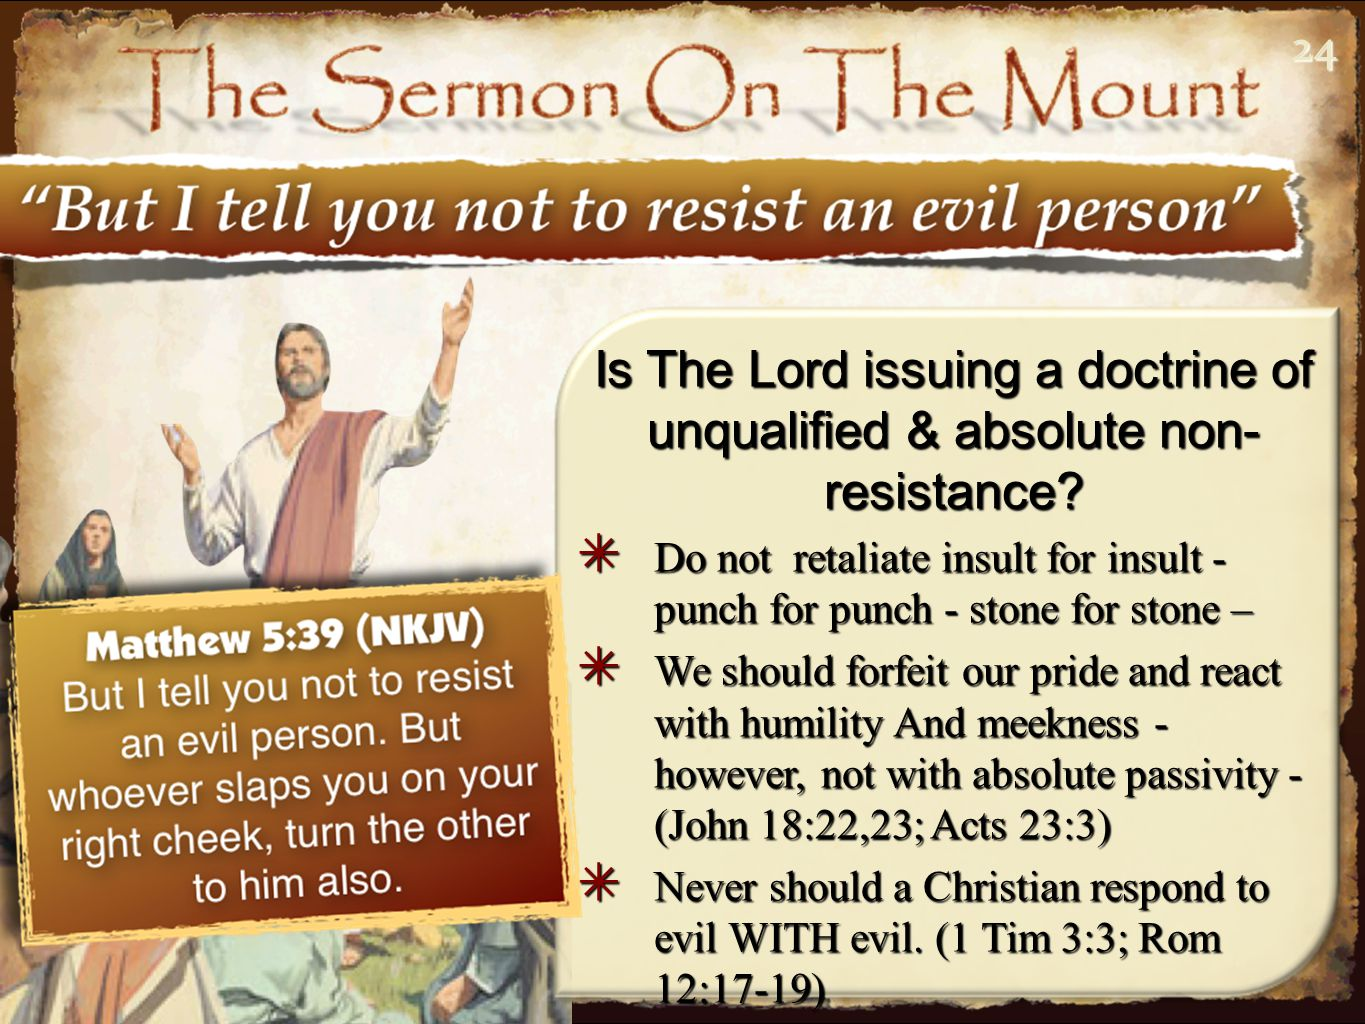 2424 Is The Lord issuing a doctrine of unqualified & absolute non- resistance.